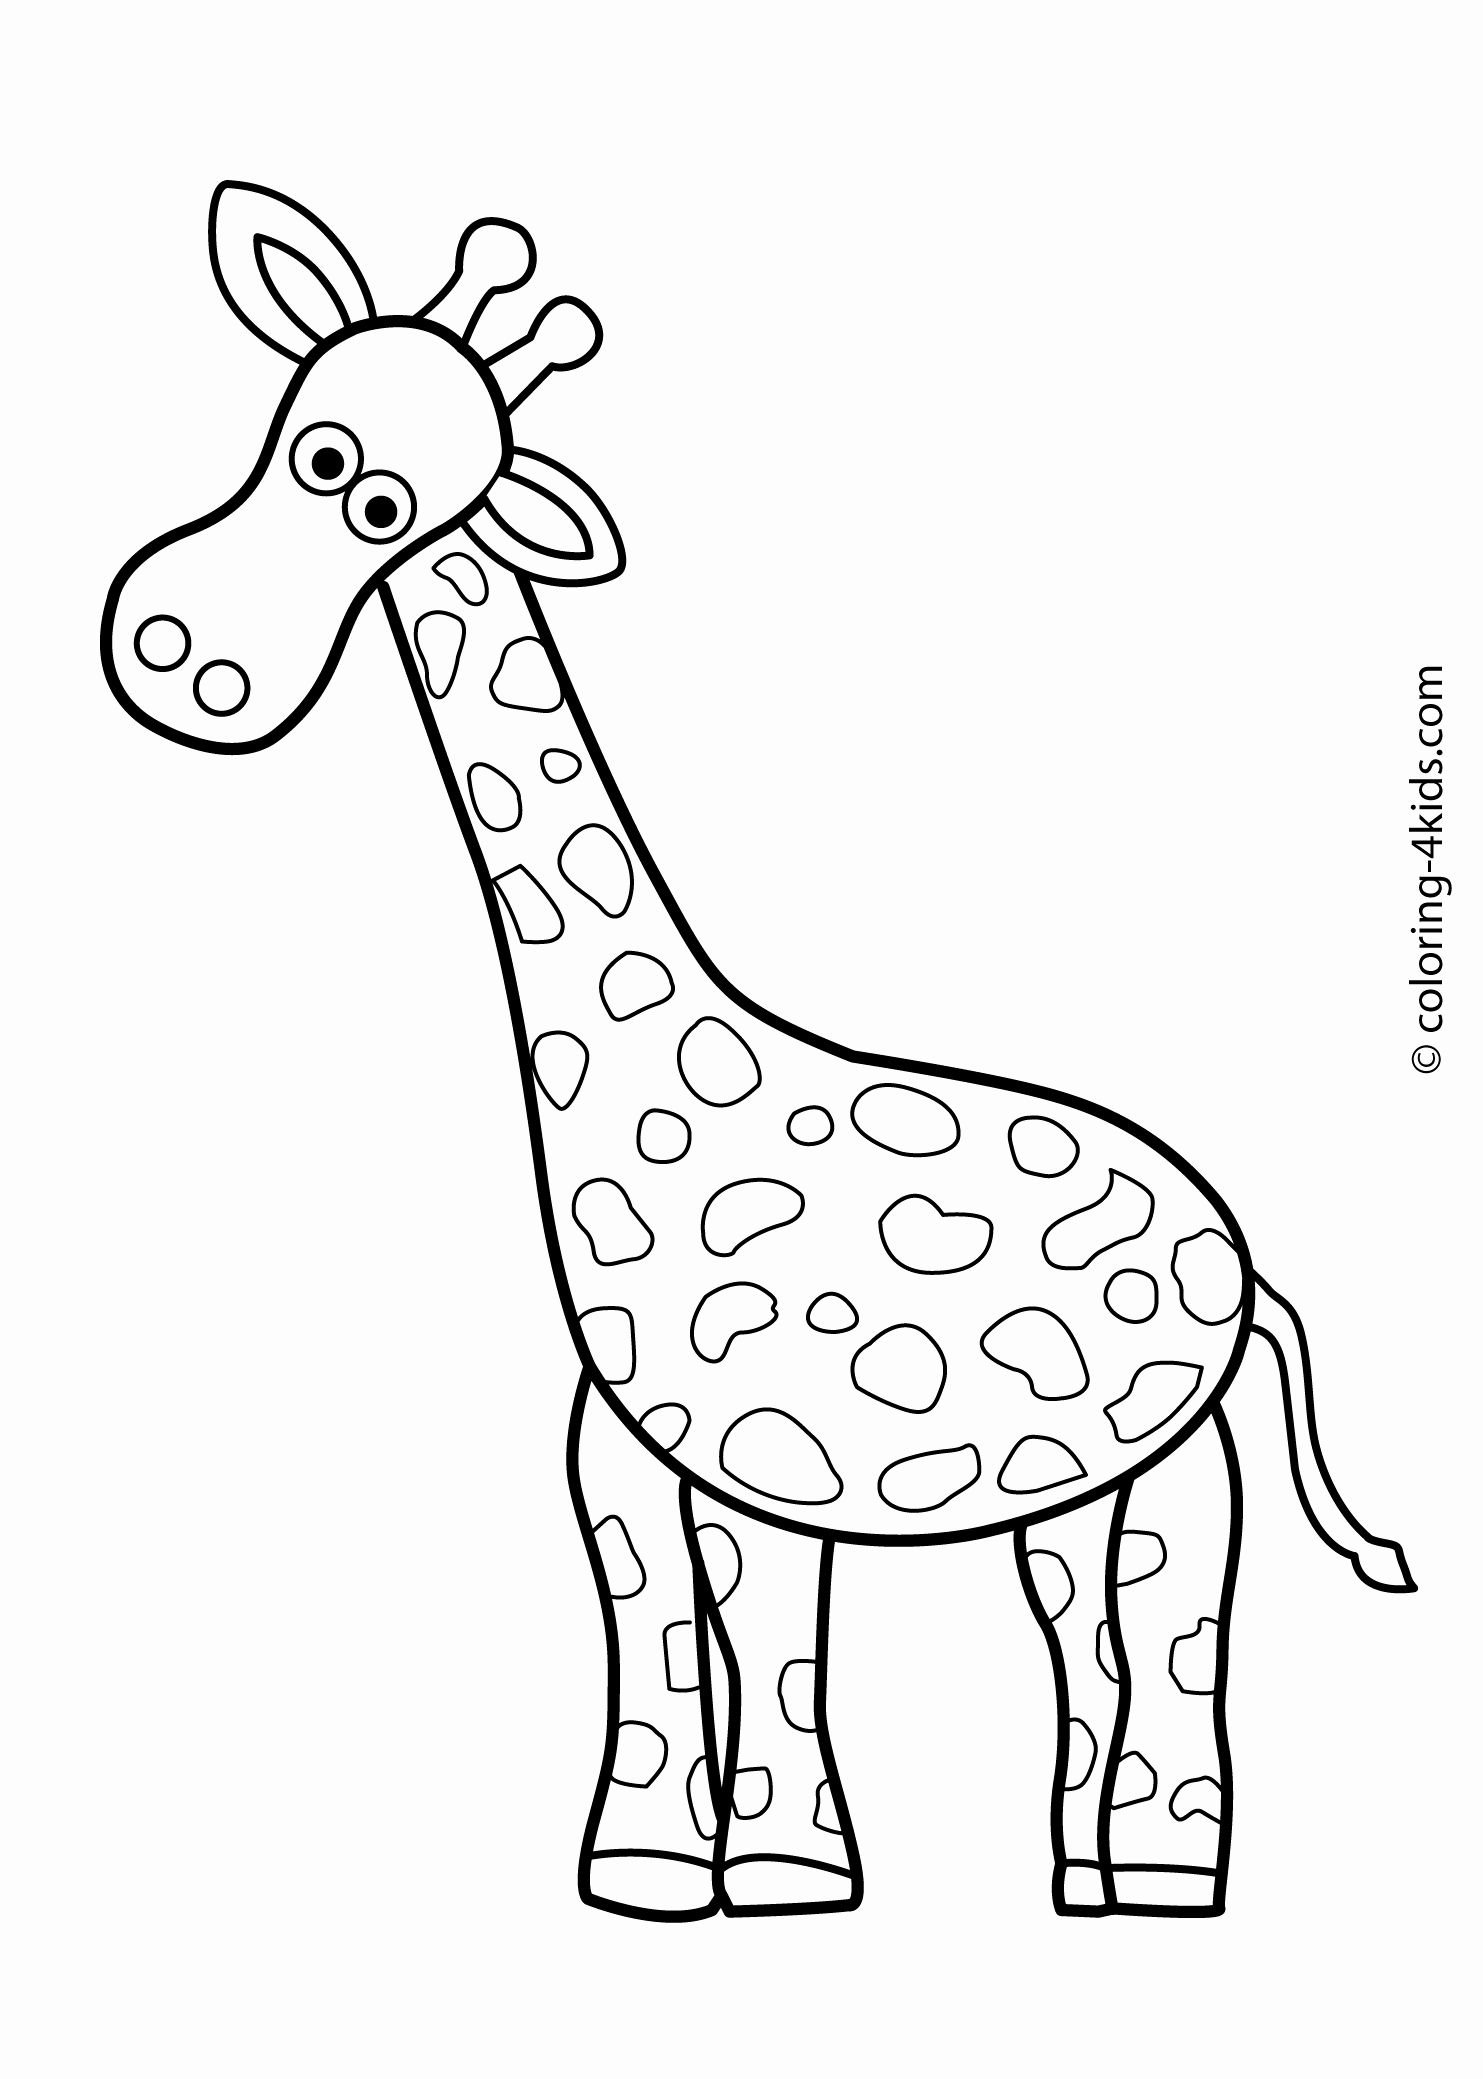 Coloring Pages Of Animal Heads New Animals Coloring Pages For Kids Giraffe Coloring Zoo Animal Coloring Pages Farm Animal Coloring Pages Giraffe Coloring Pages